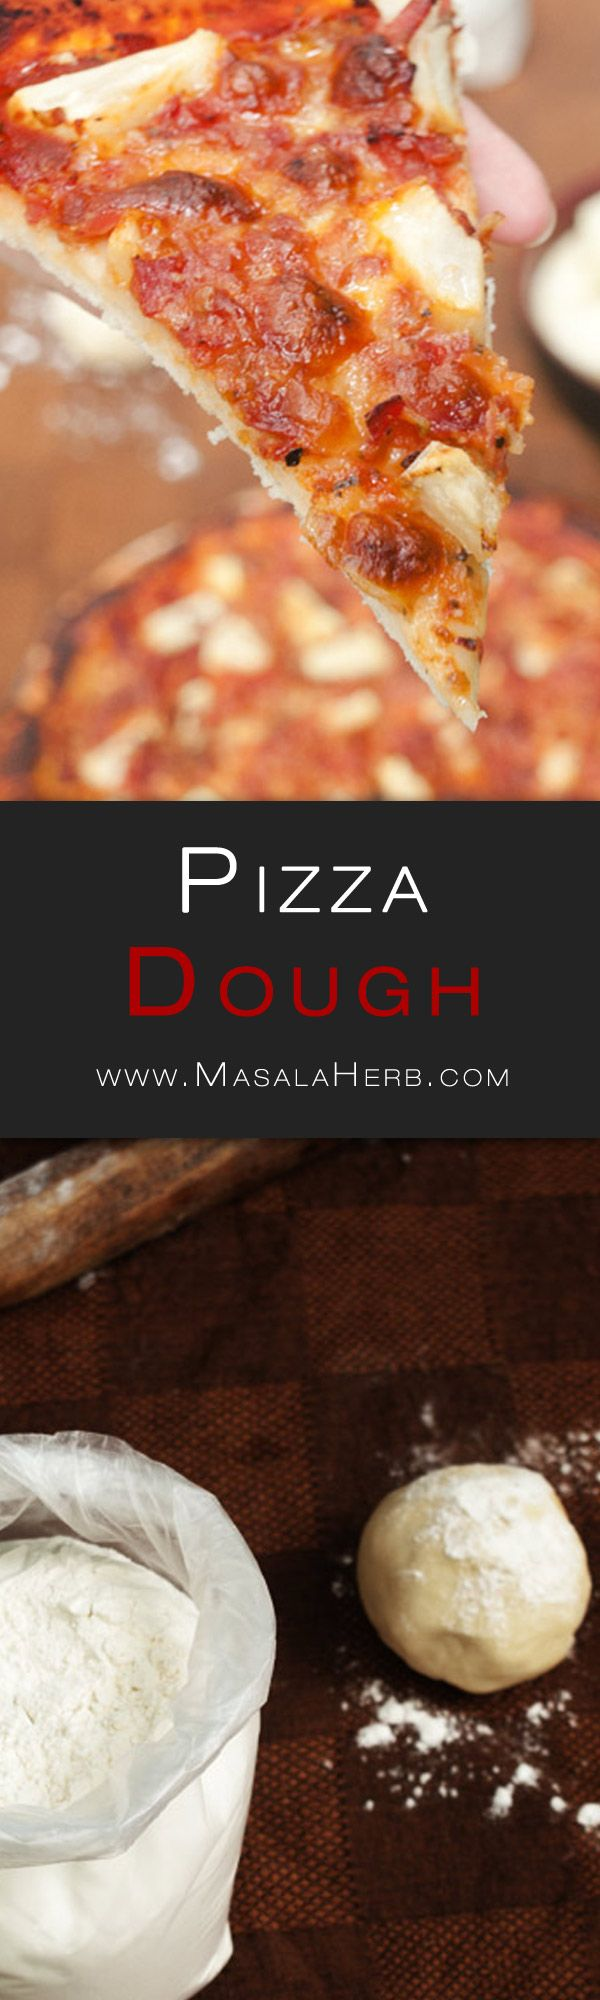 Easy Pizza Dough Recipe from scratch - How to make pizza dough - Classic soft Pizza Crust + Video www.masalaherb.com